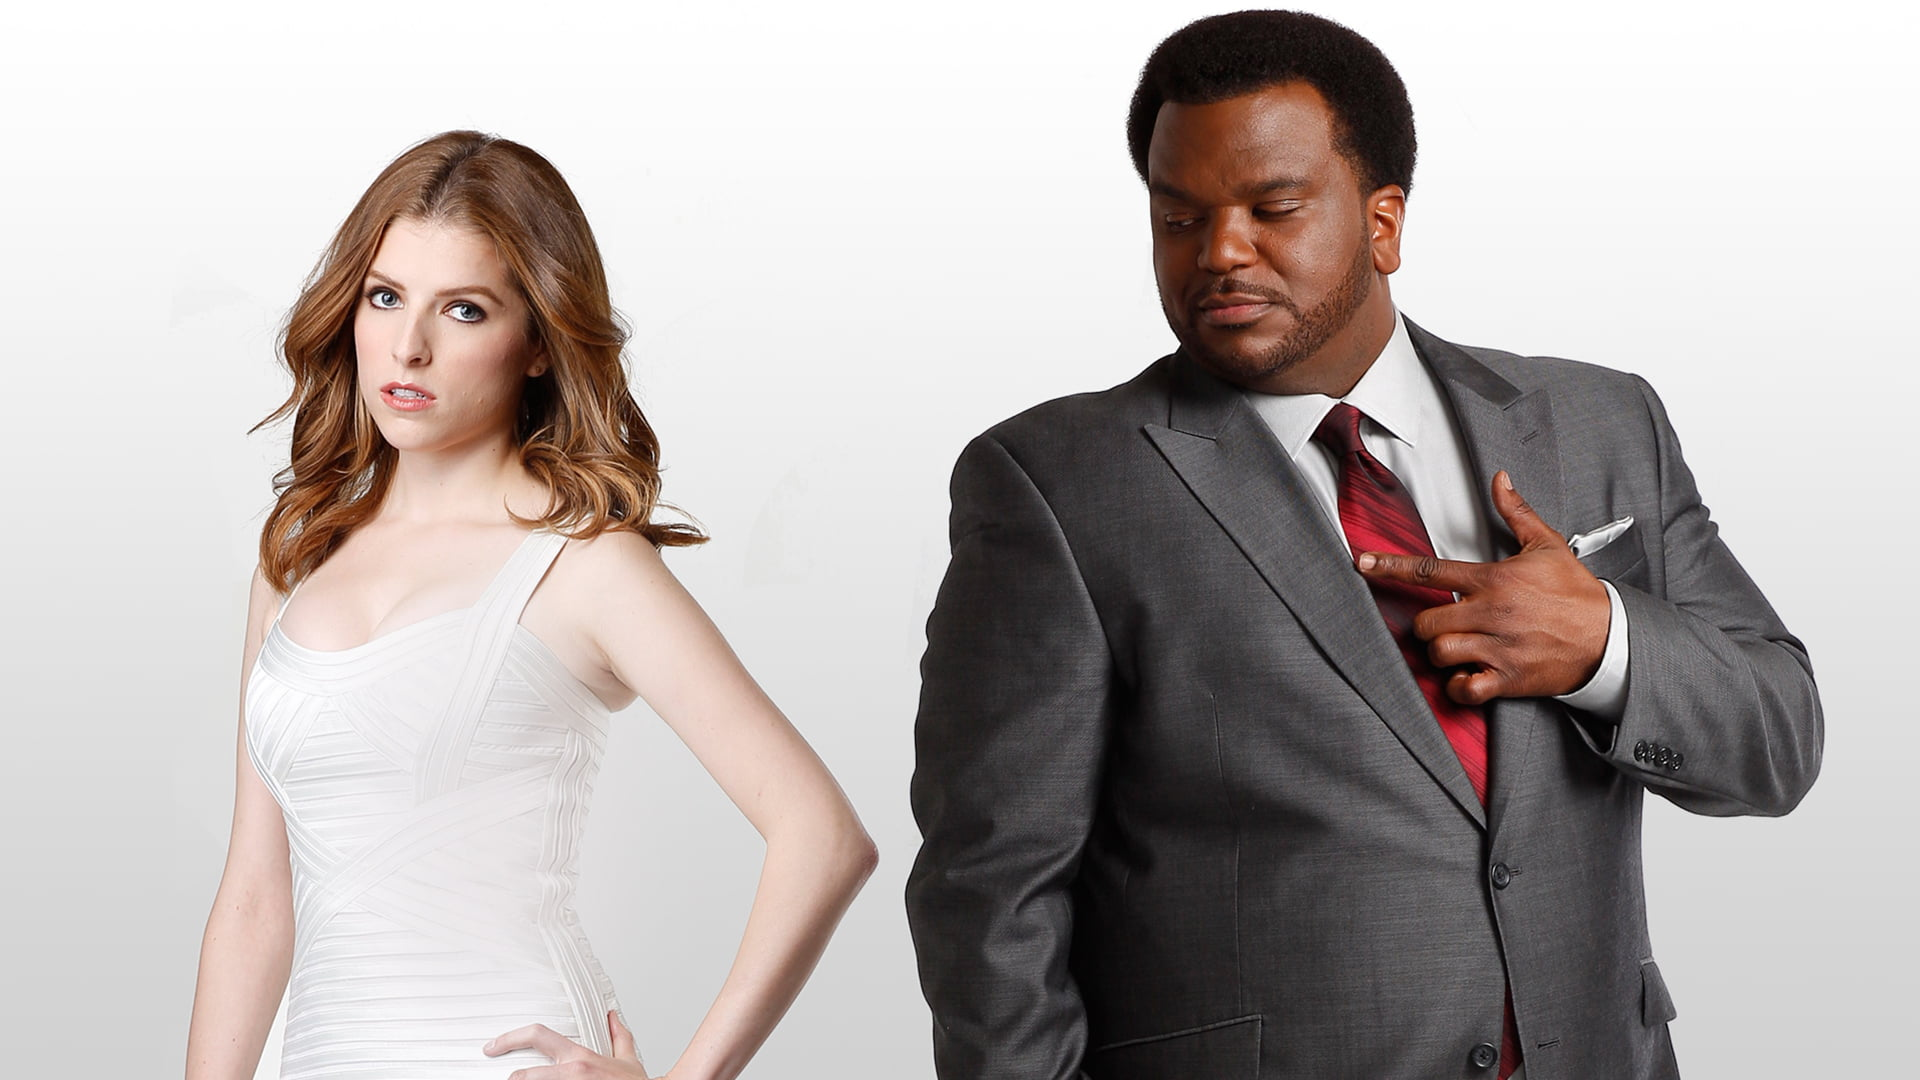 Anna Kendrick with Craig Robinson as Earl 'The Beast' Gundy in Rapture Palooza (2013)